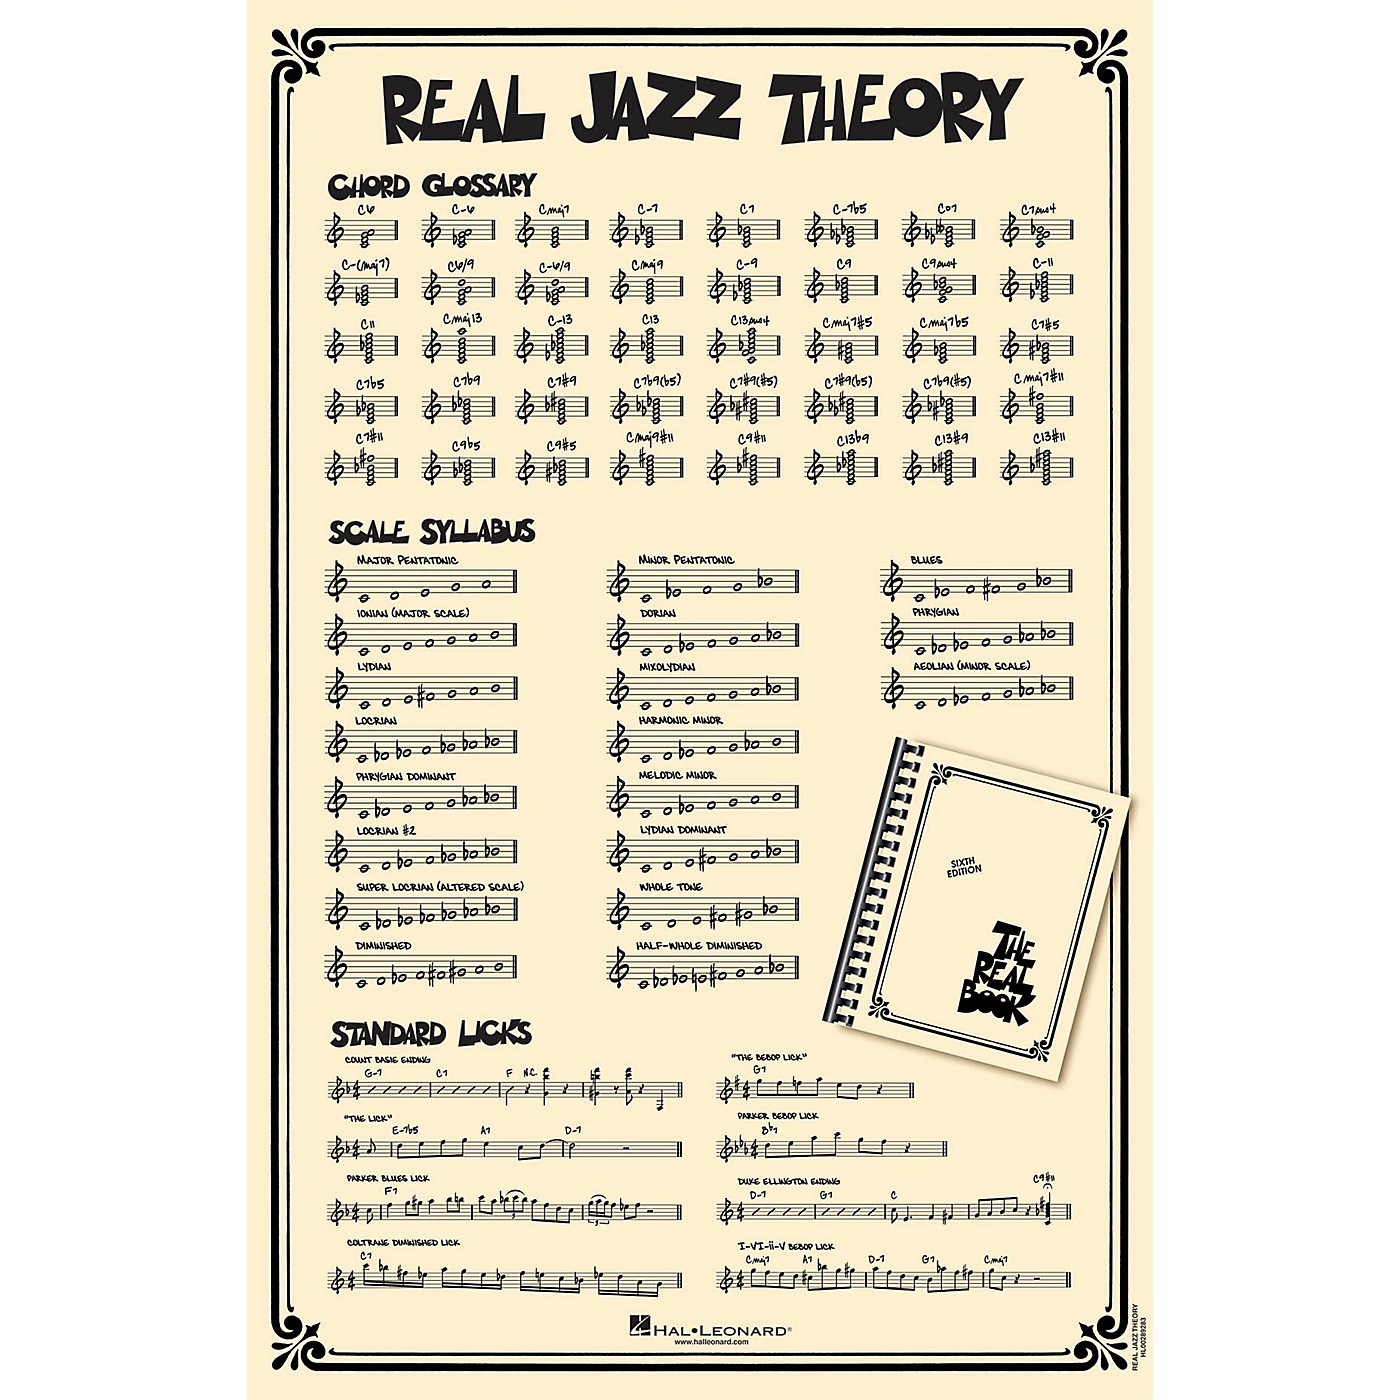 Hal Leonard Real Jazz Theory Wall Poster featuring Real Book Notation - 22 inch x 34 inch thumbnail